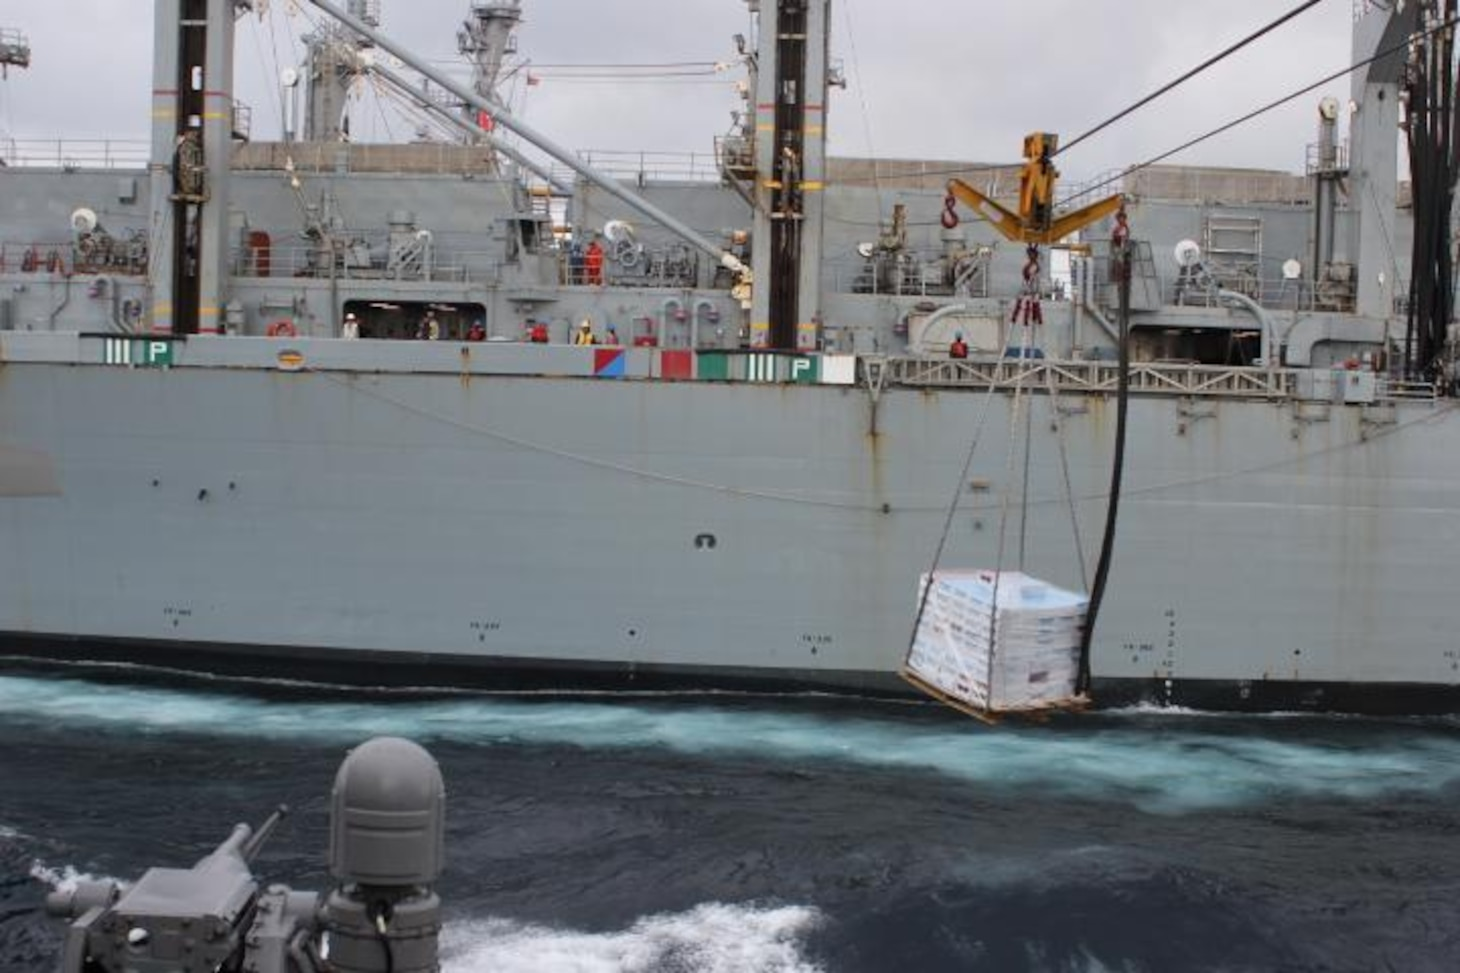 NORTH ATLANTIC (April 28, 2020) - The Arleigh Burke-class guided-missile destroyer USS Donald Cook (DDG 75) conducts a connected replenishment with USNS SUPPLY (T-AOE 6) to receive fuel and stores, April 28, 2020. CNE-CAN/C6F, headquartered in Naples, Italy, oversees joint and naval operations, often in concert with Allied, joint, and interagency partners, in order to advance U.S. national interests and security and stability in Europe and Africa. (U.S. Navy photo by Yeoman Third Class Anthony Nichols/Releaed)